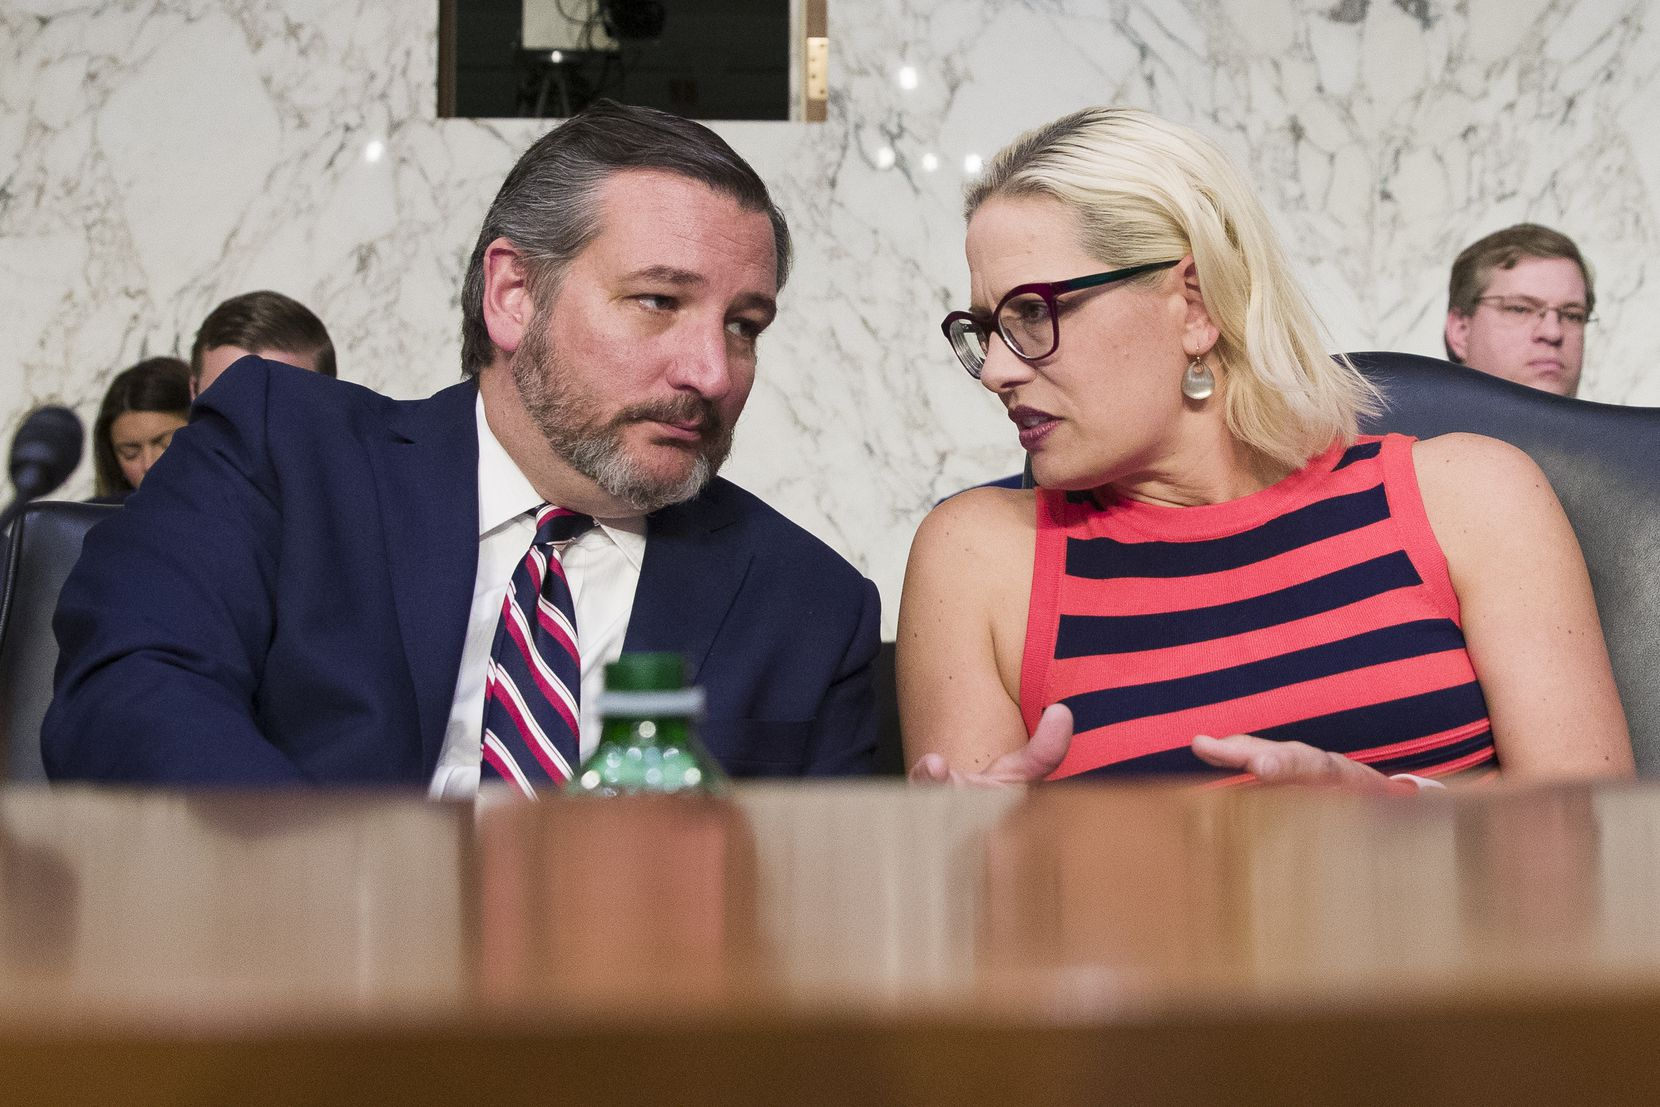 Senate Transportation subcommittee chair Ted Cruz, R-Texas, left, and ranking member Kyrsten Sinema, D-Ariz., talk during a hearing on commercial airline safety, on Capitol Hill, Wednesday, March 27, 2019, in Washington. Two recent Boeing 737 MAX crashes, in Ethiopia and Indonesia, which killed nearly 350 people, have lead to the temporary grounding of models of the aircraft and to increased scrutiny of the FAA's delegation of a number of aspects of the certification process to the aircraft manufacturers themselves.